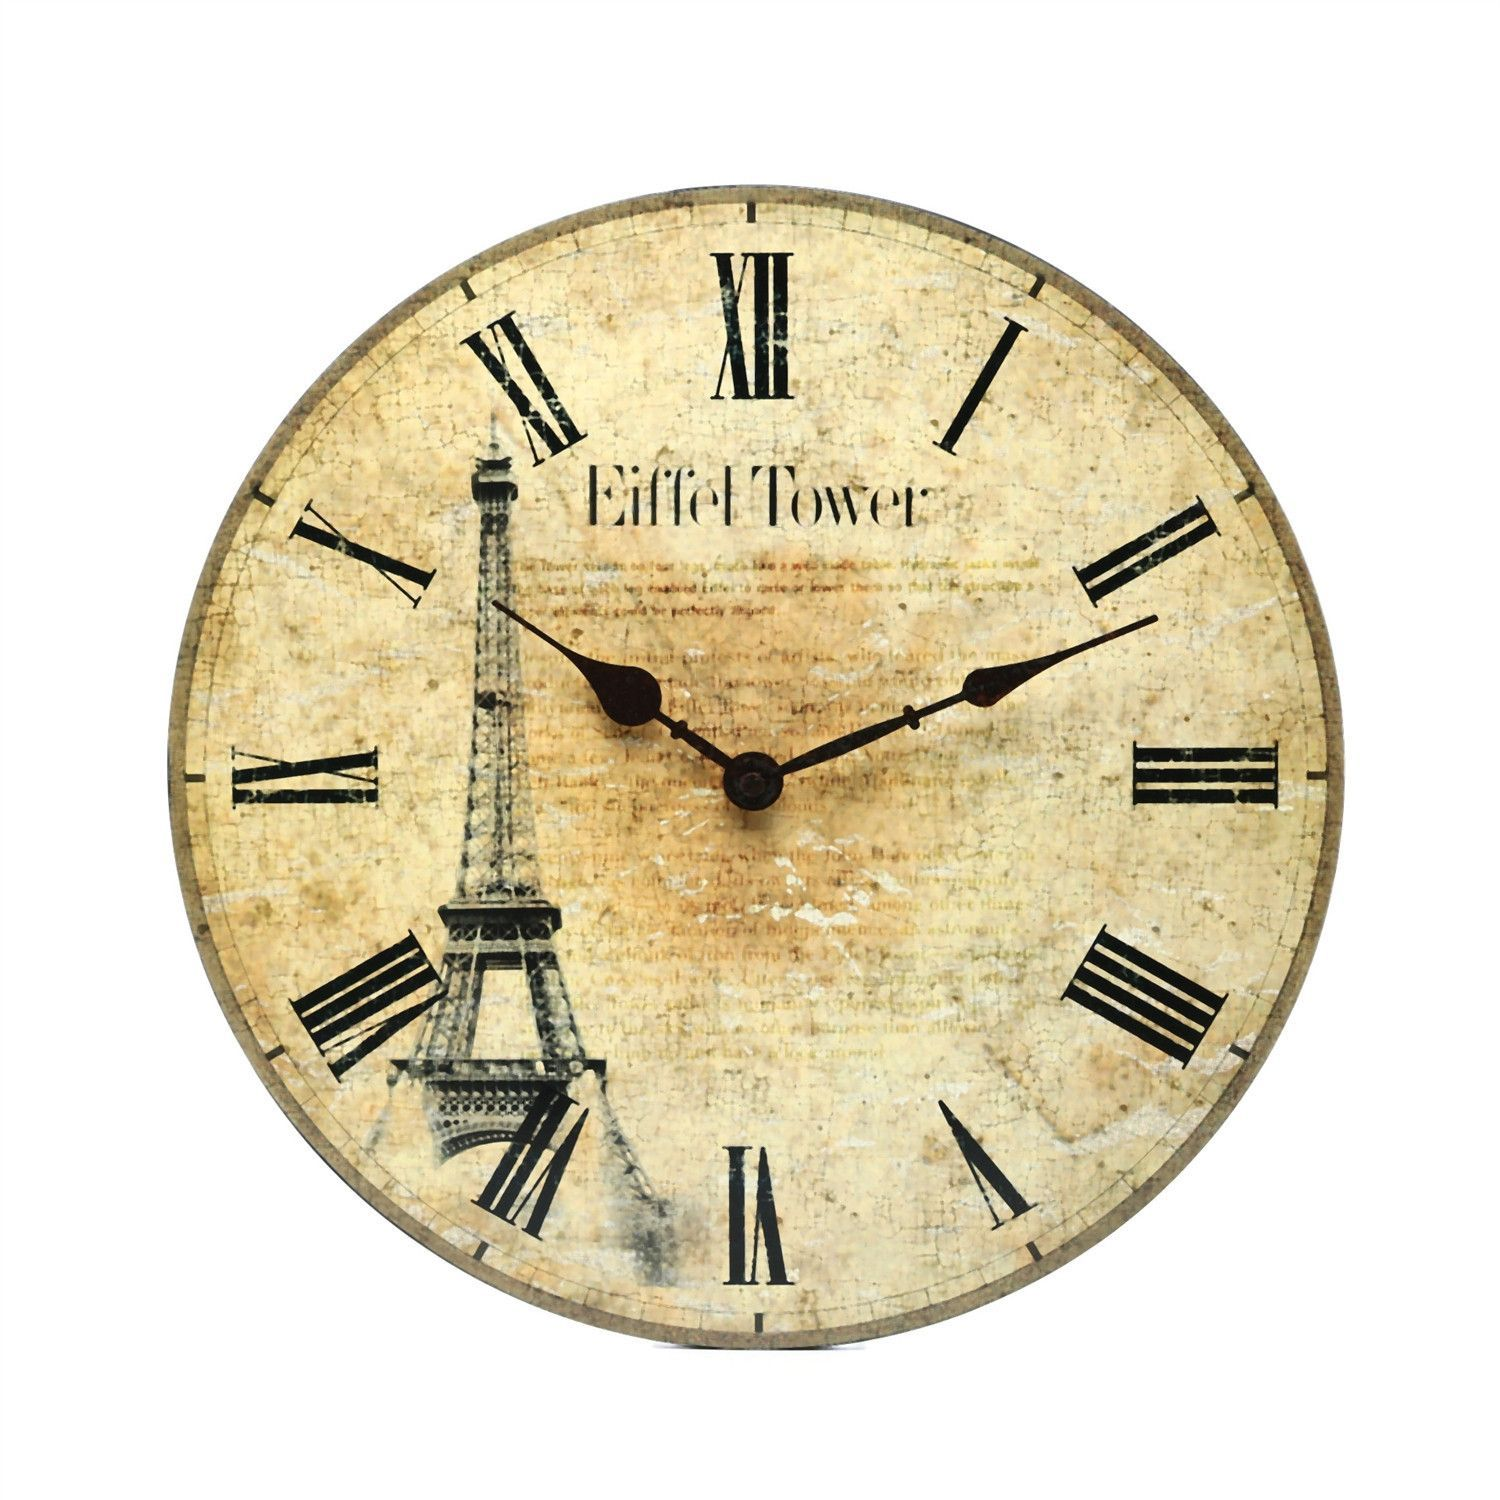 Worn Face Paris Wall Clock With Roman Numerals | Wall clocks, Roman ...